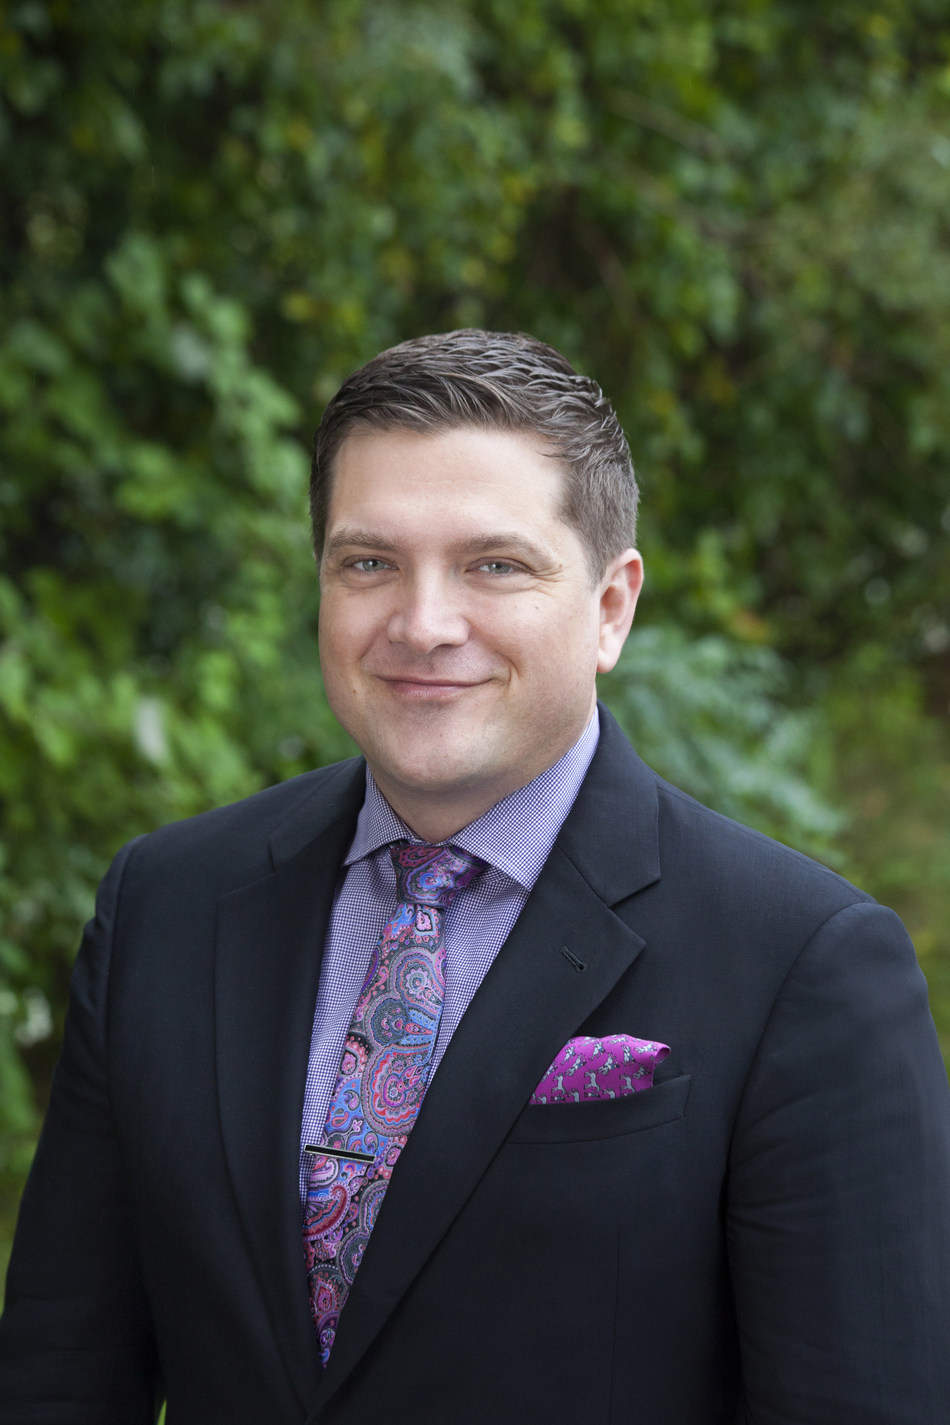 Andrew Burki, Founder of Life of Purpose and Director of Public Policy